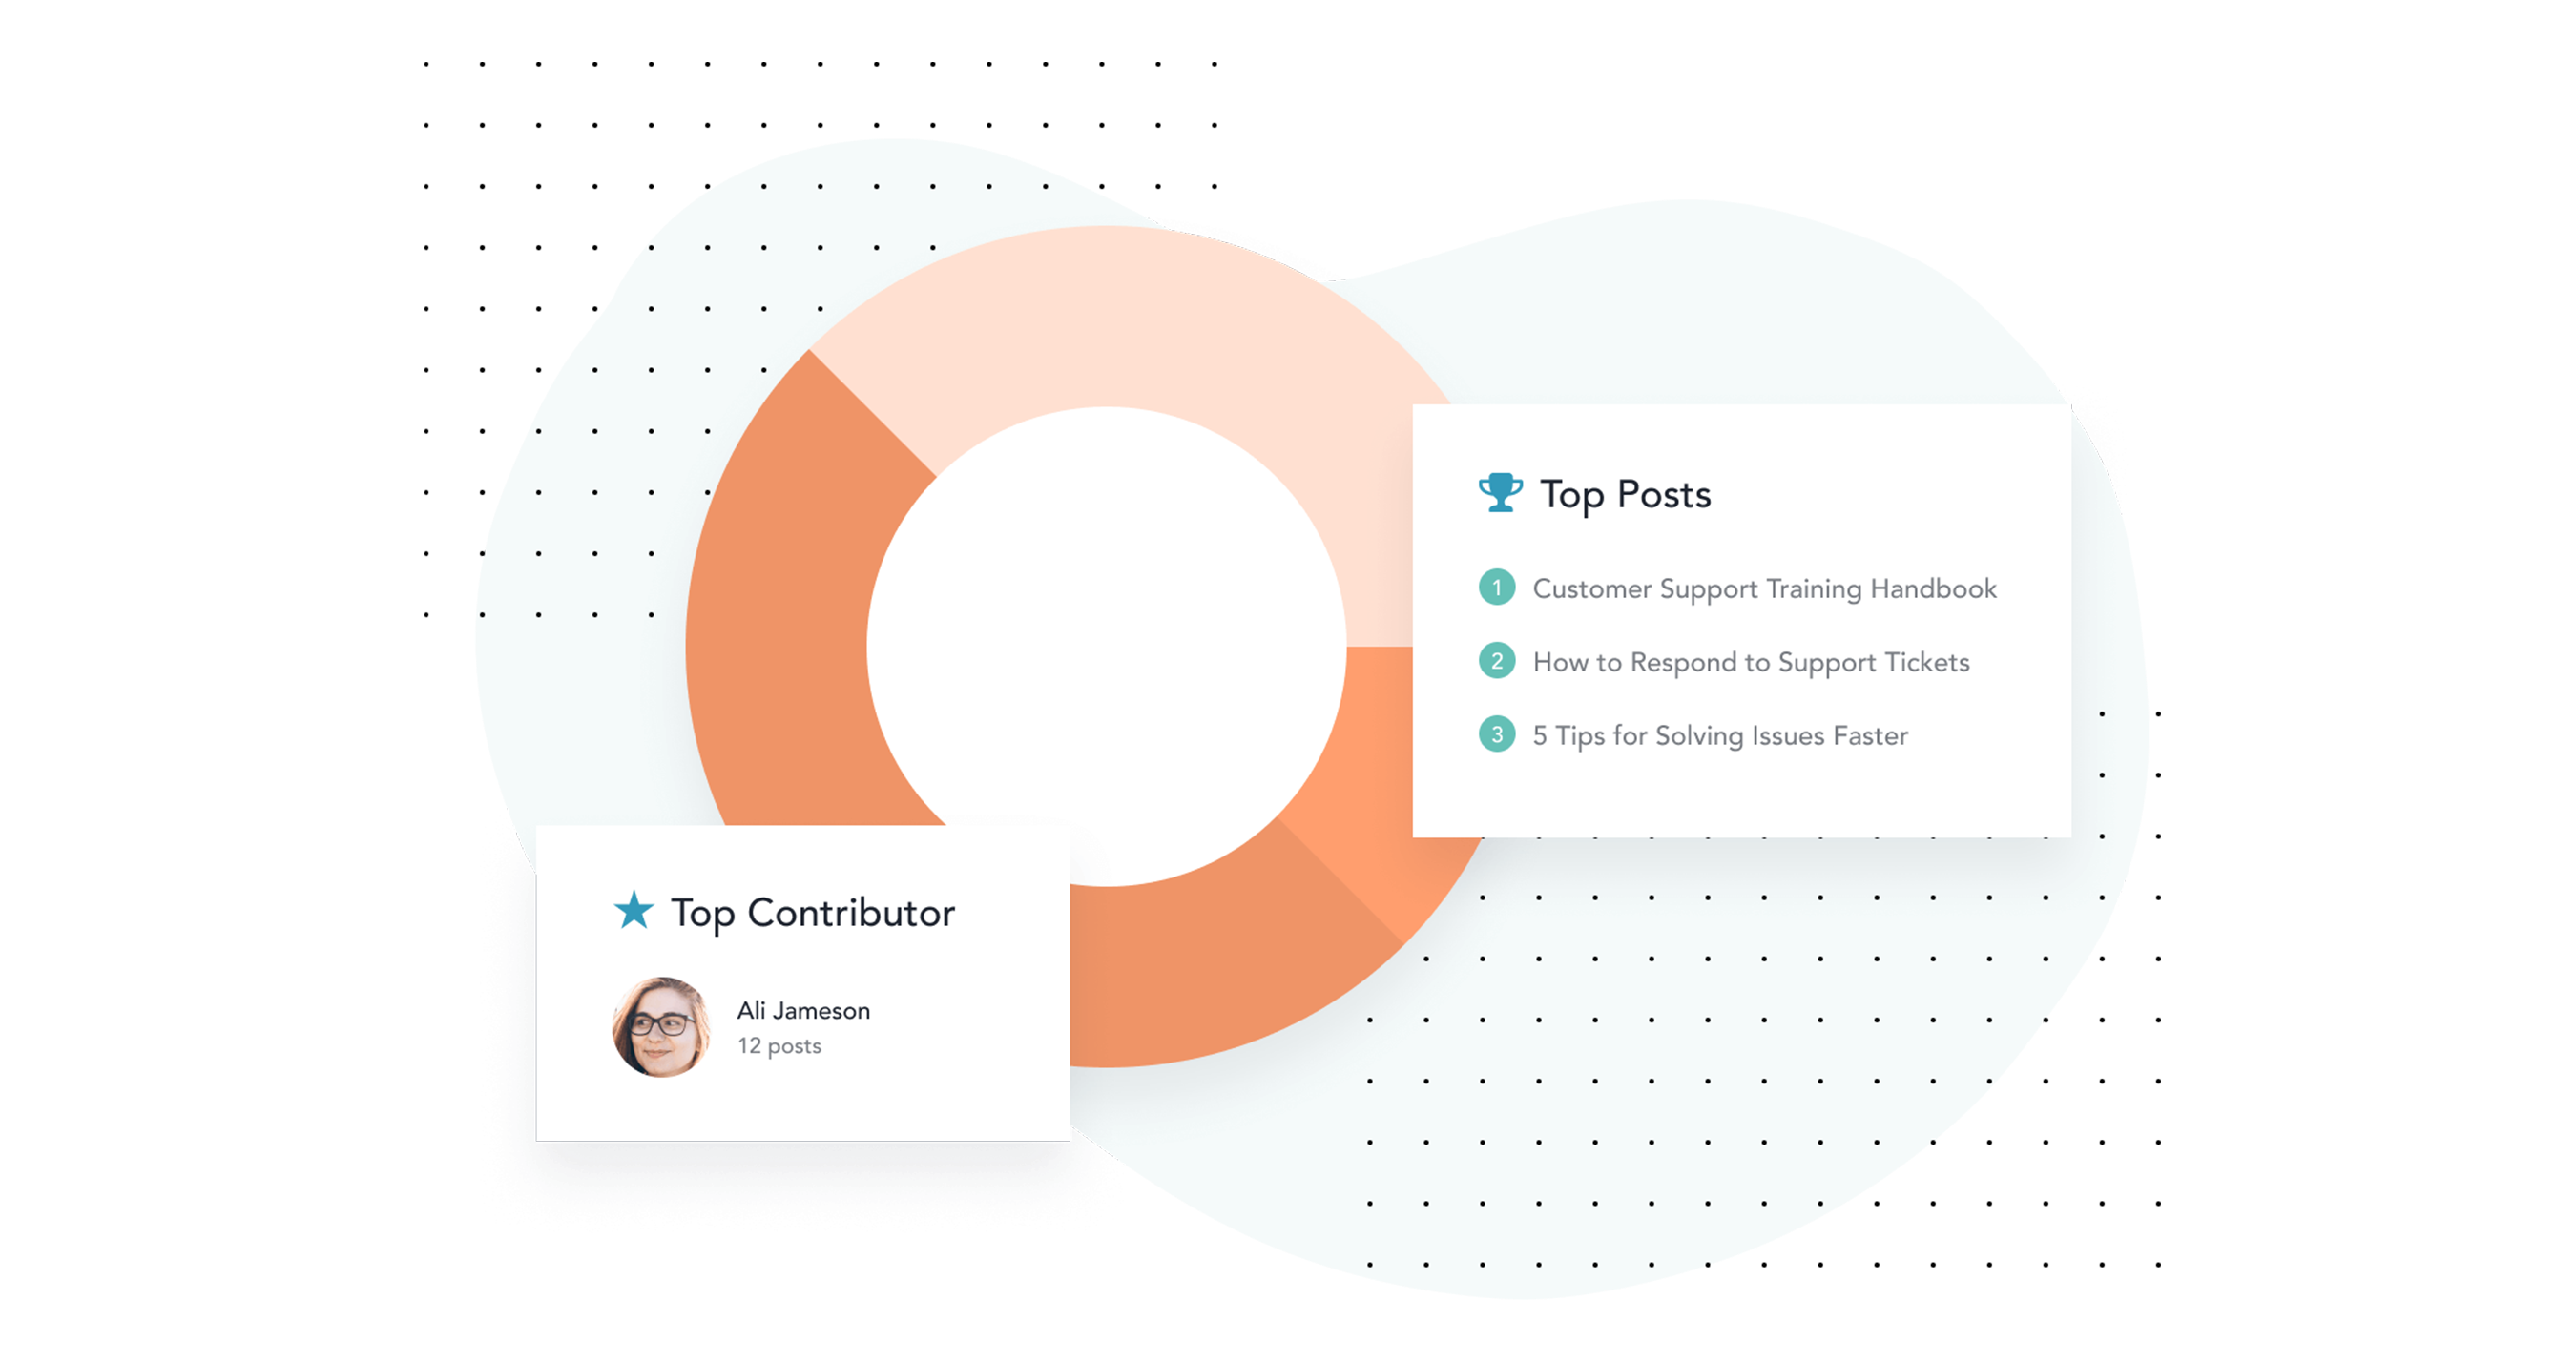 Use built-in analytics to see what content is getting the most engagement, who is viewing individual posts and series, what terms users are searching for, and more.